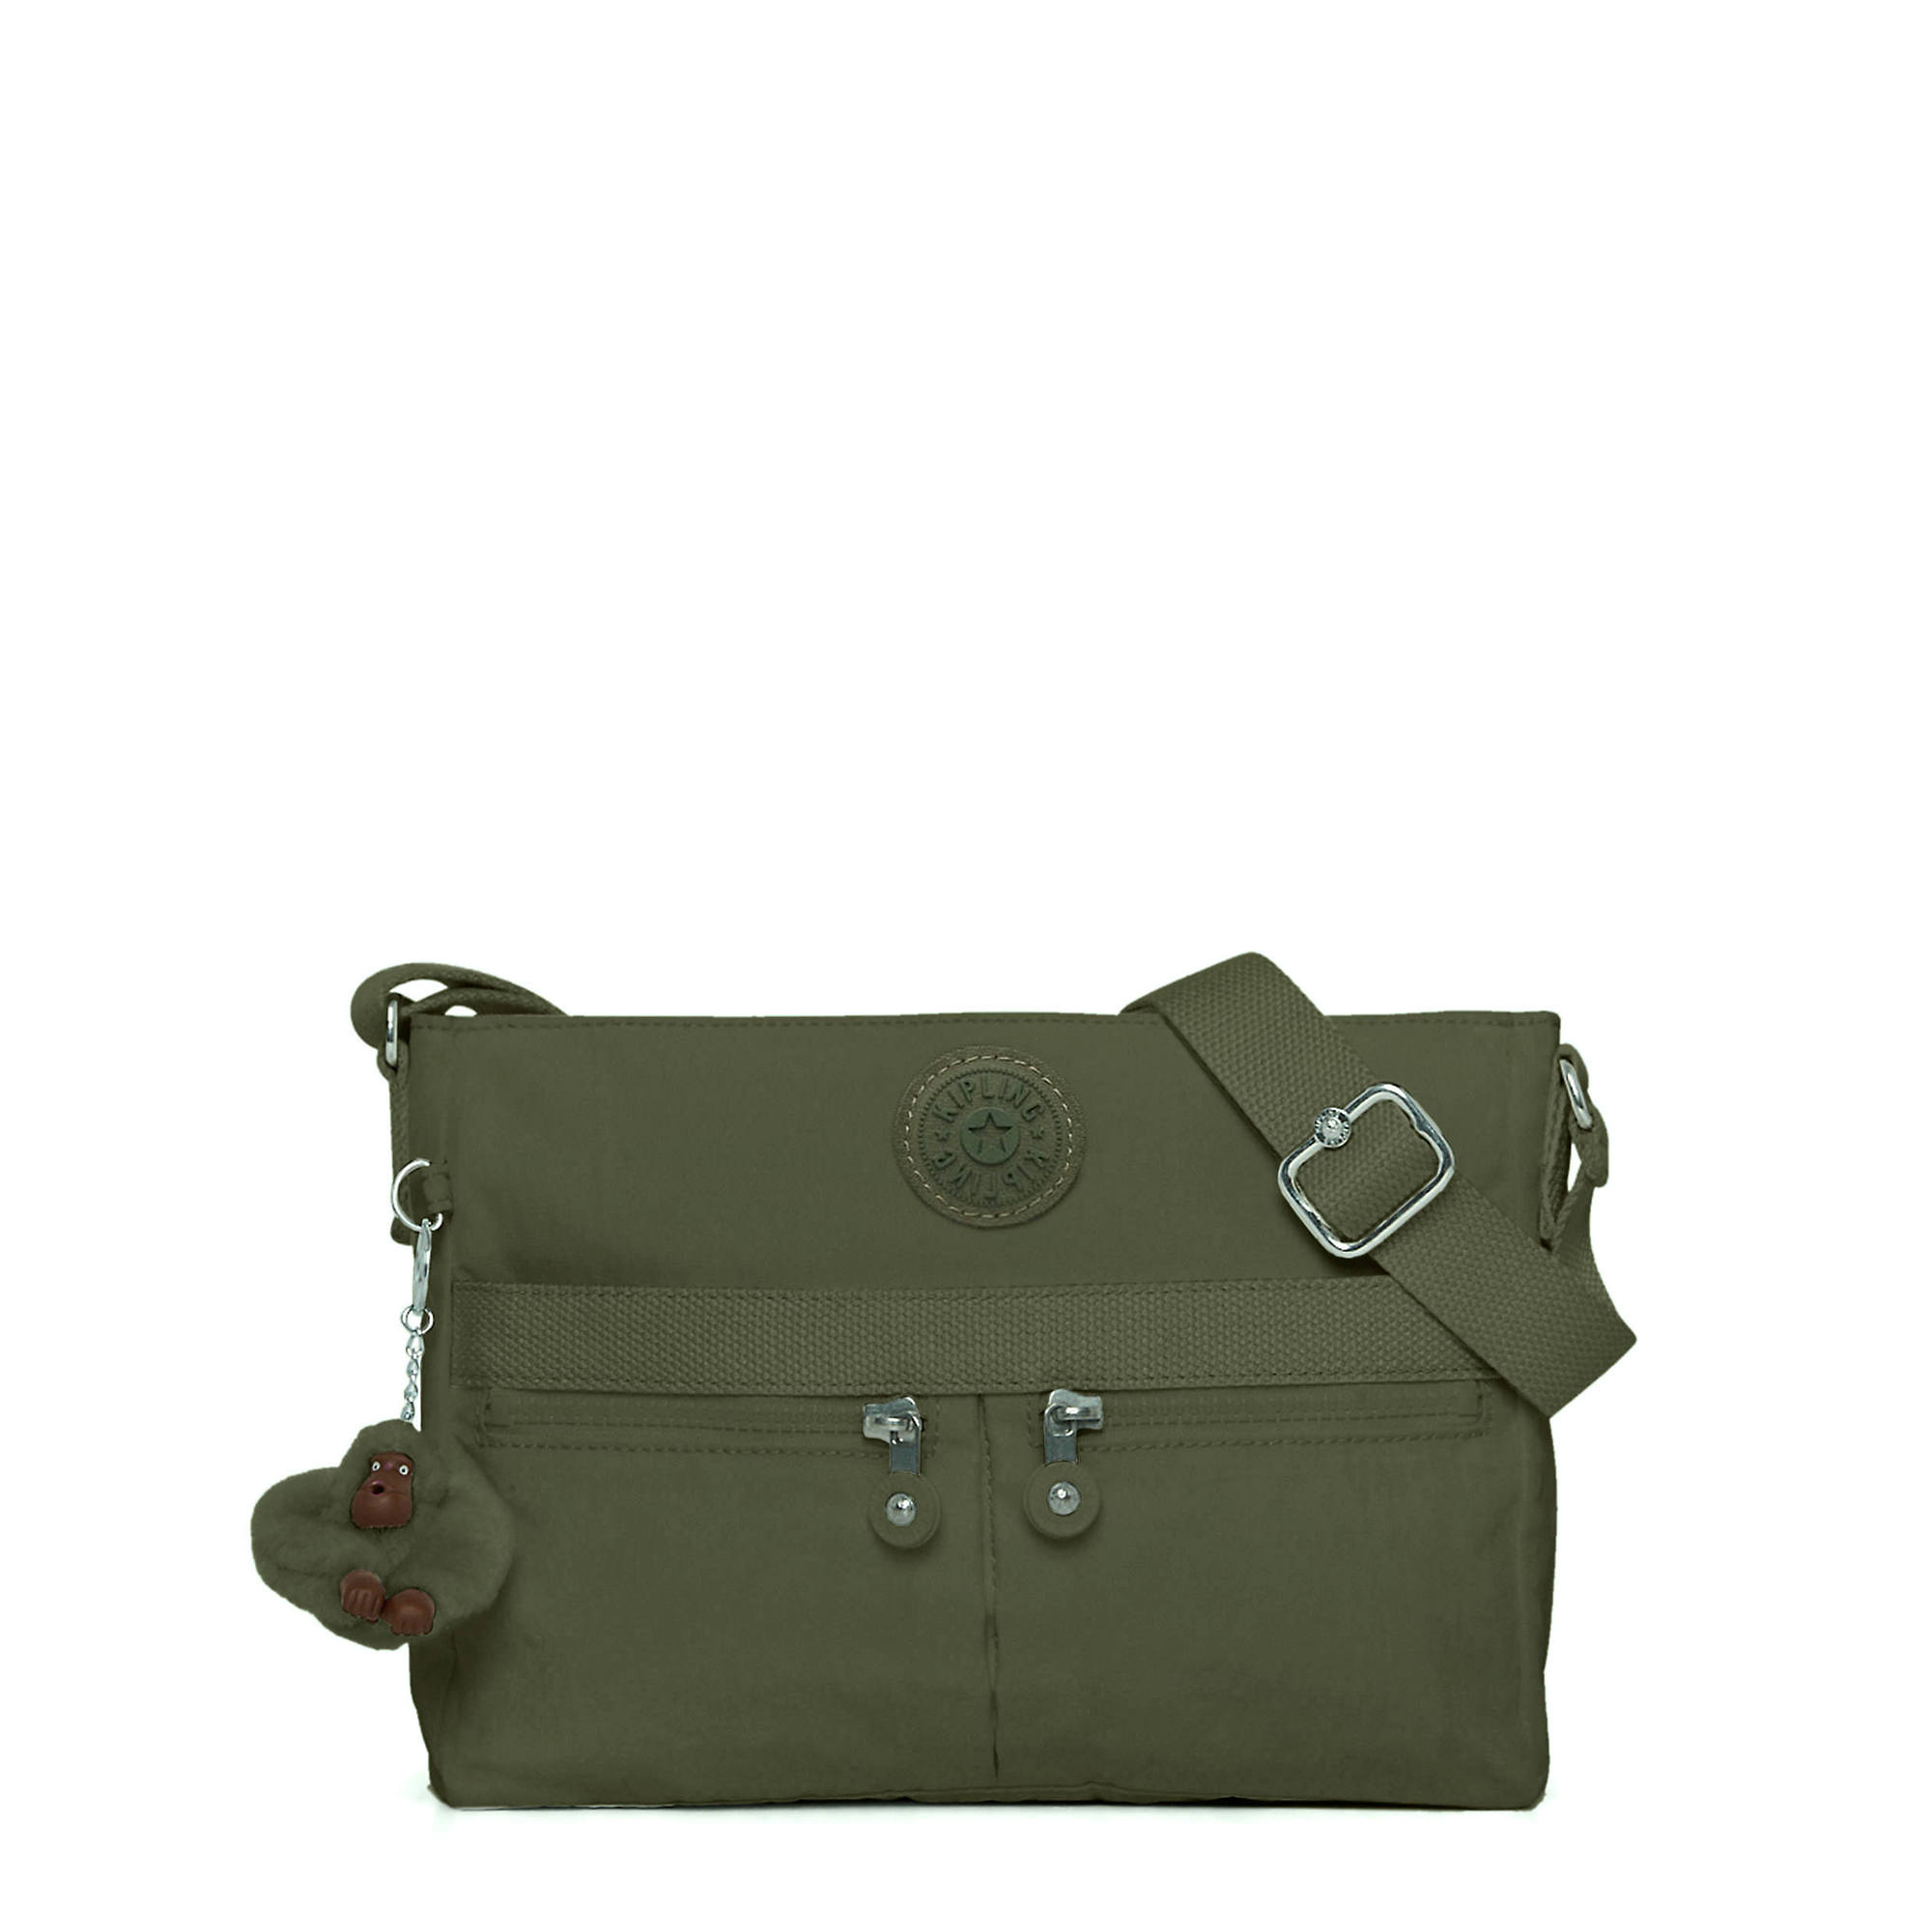 70fadaf89 Angie Handbag,Jaded Green Tonal Zipper,large